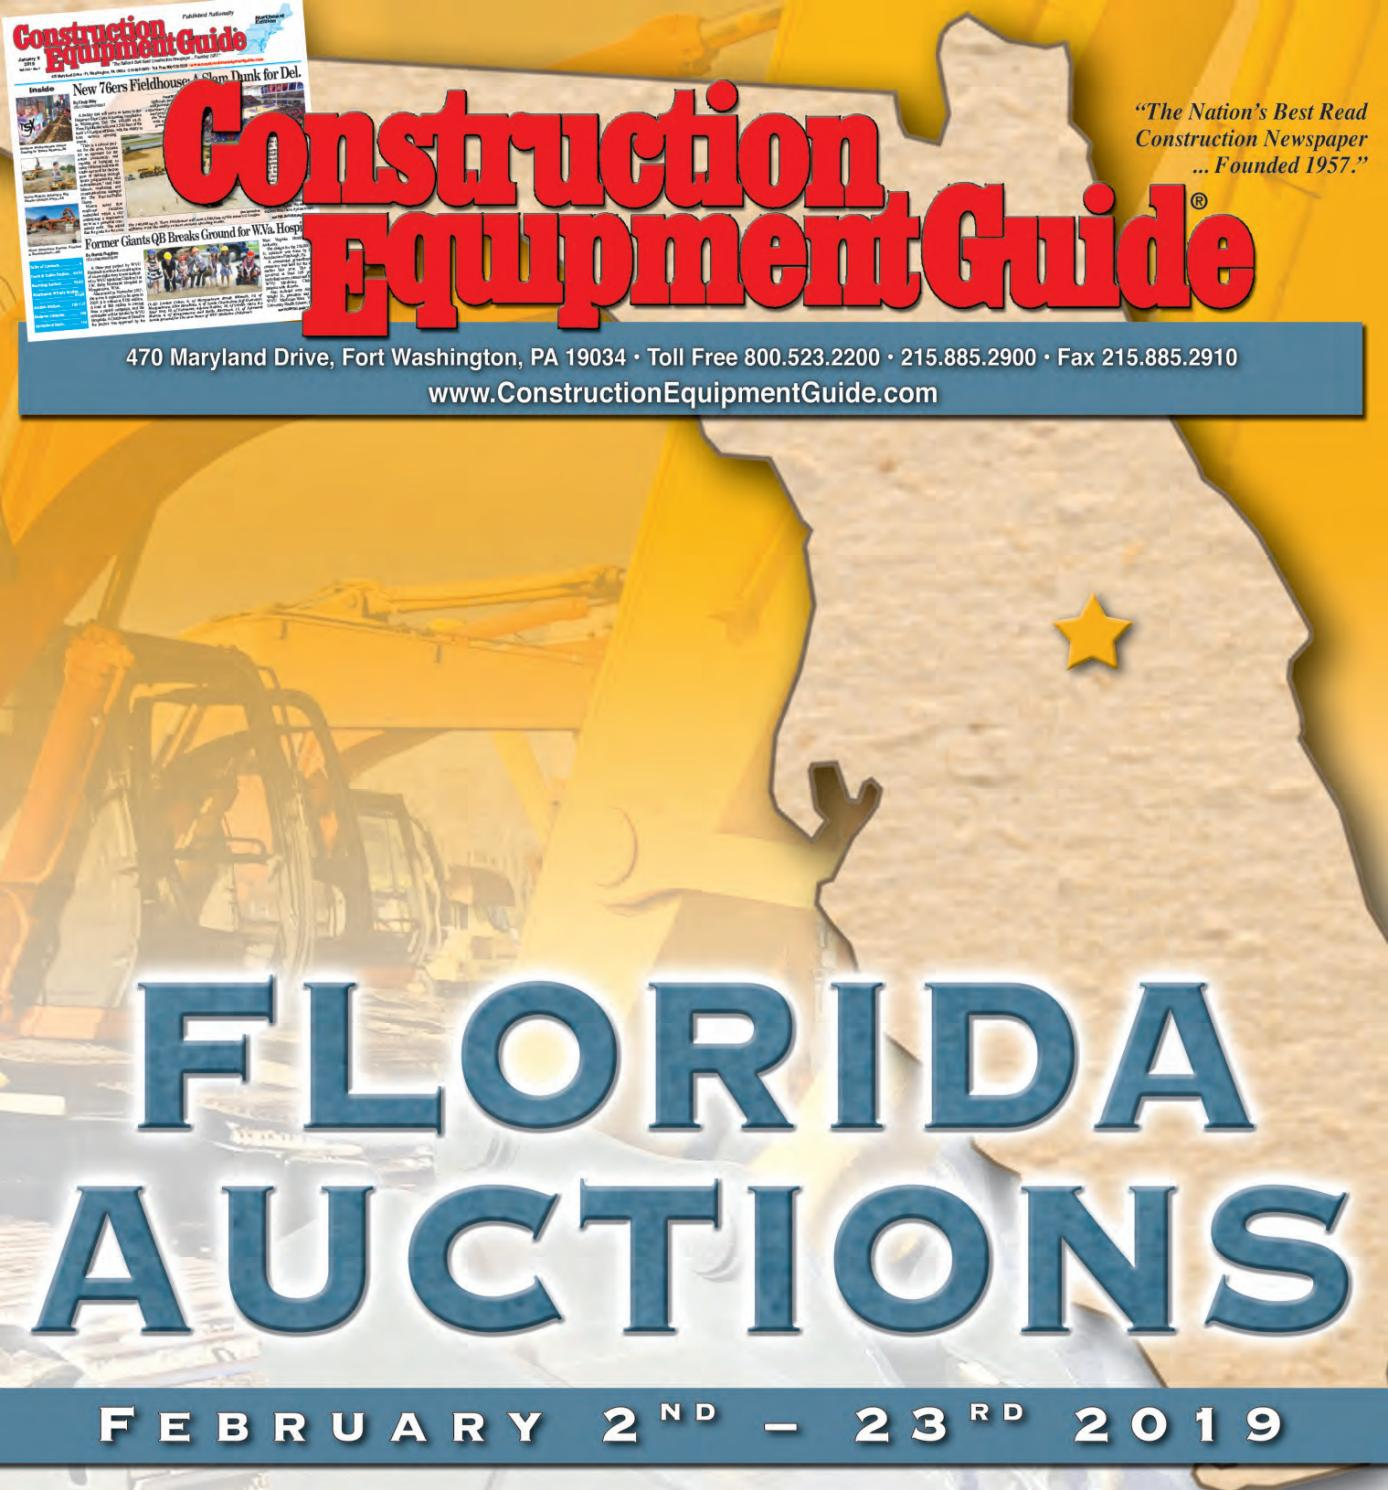 Florida Auctions 2019 by Construction Equipment Guide - issuu